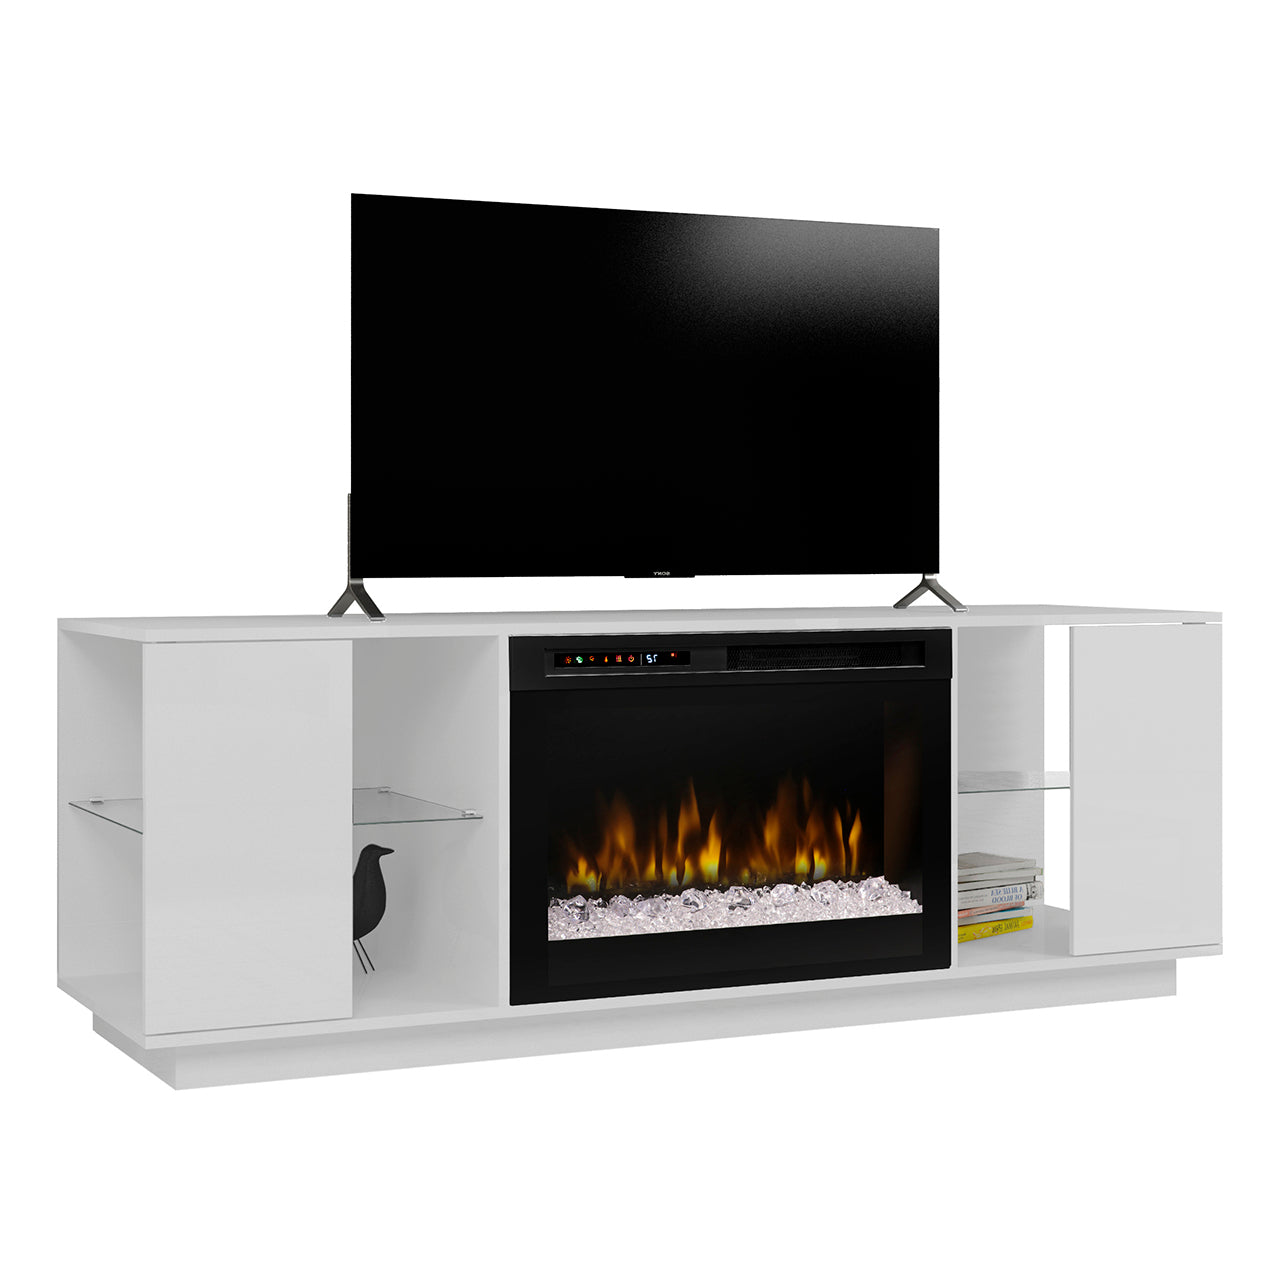 Picture of Flex Lex Media Console Fireplace